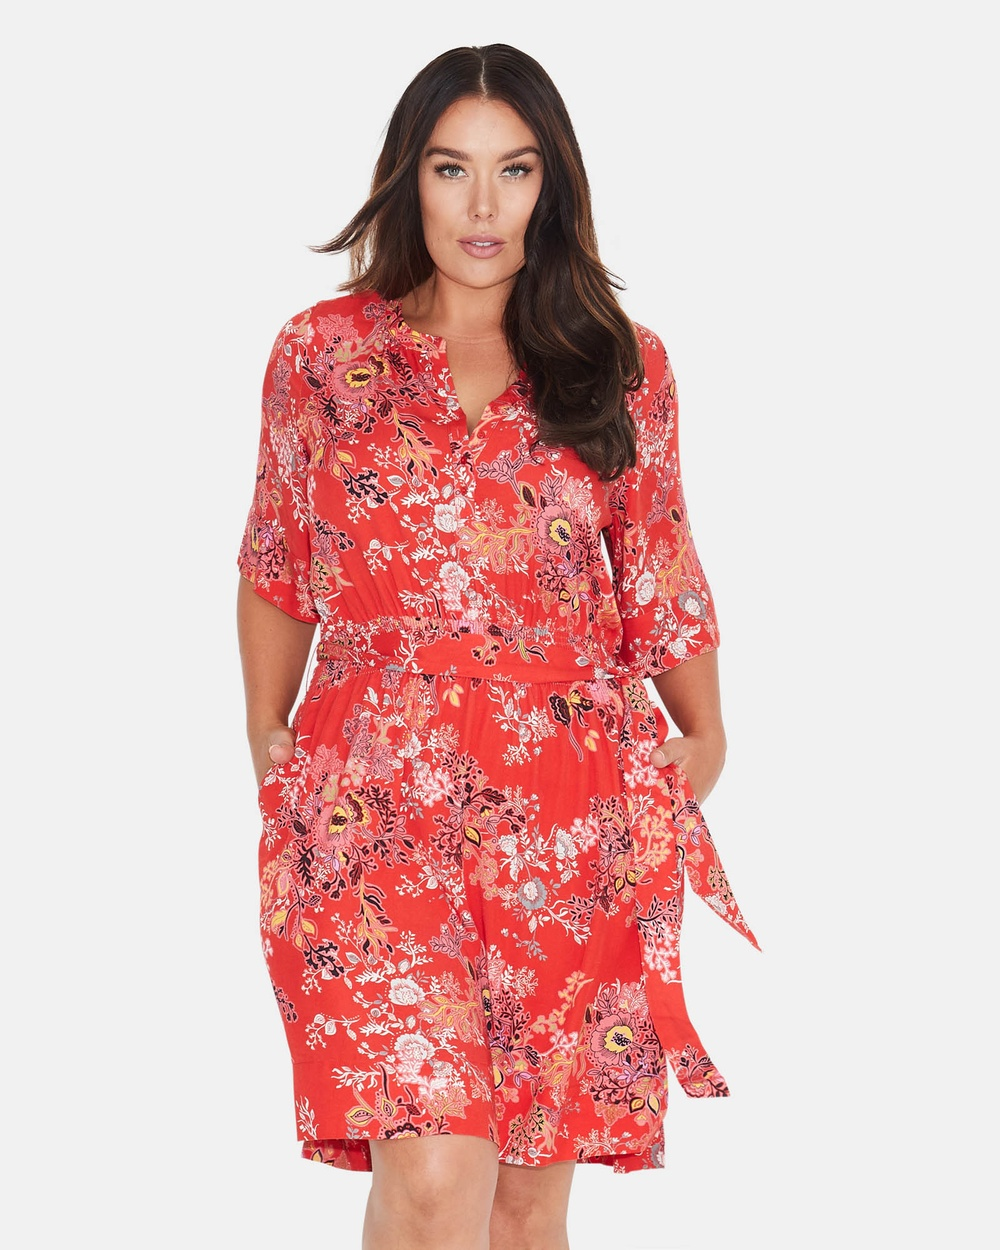 17 Sundays Oriental Floral Dress Printed Dresses Red Oriental Floral Dress